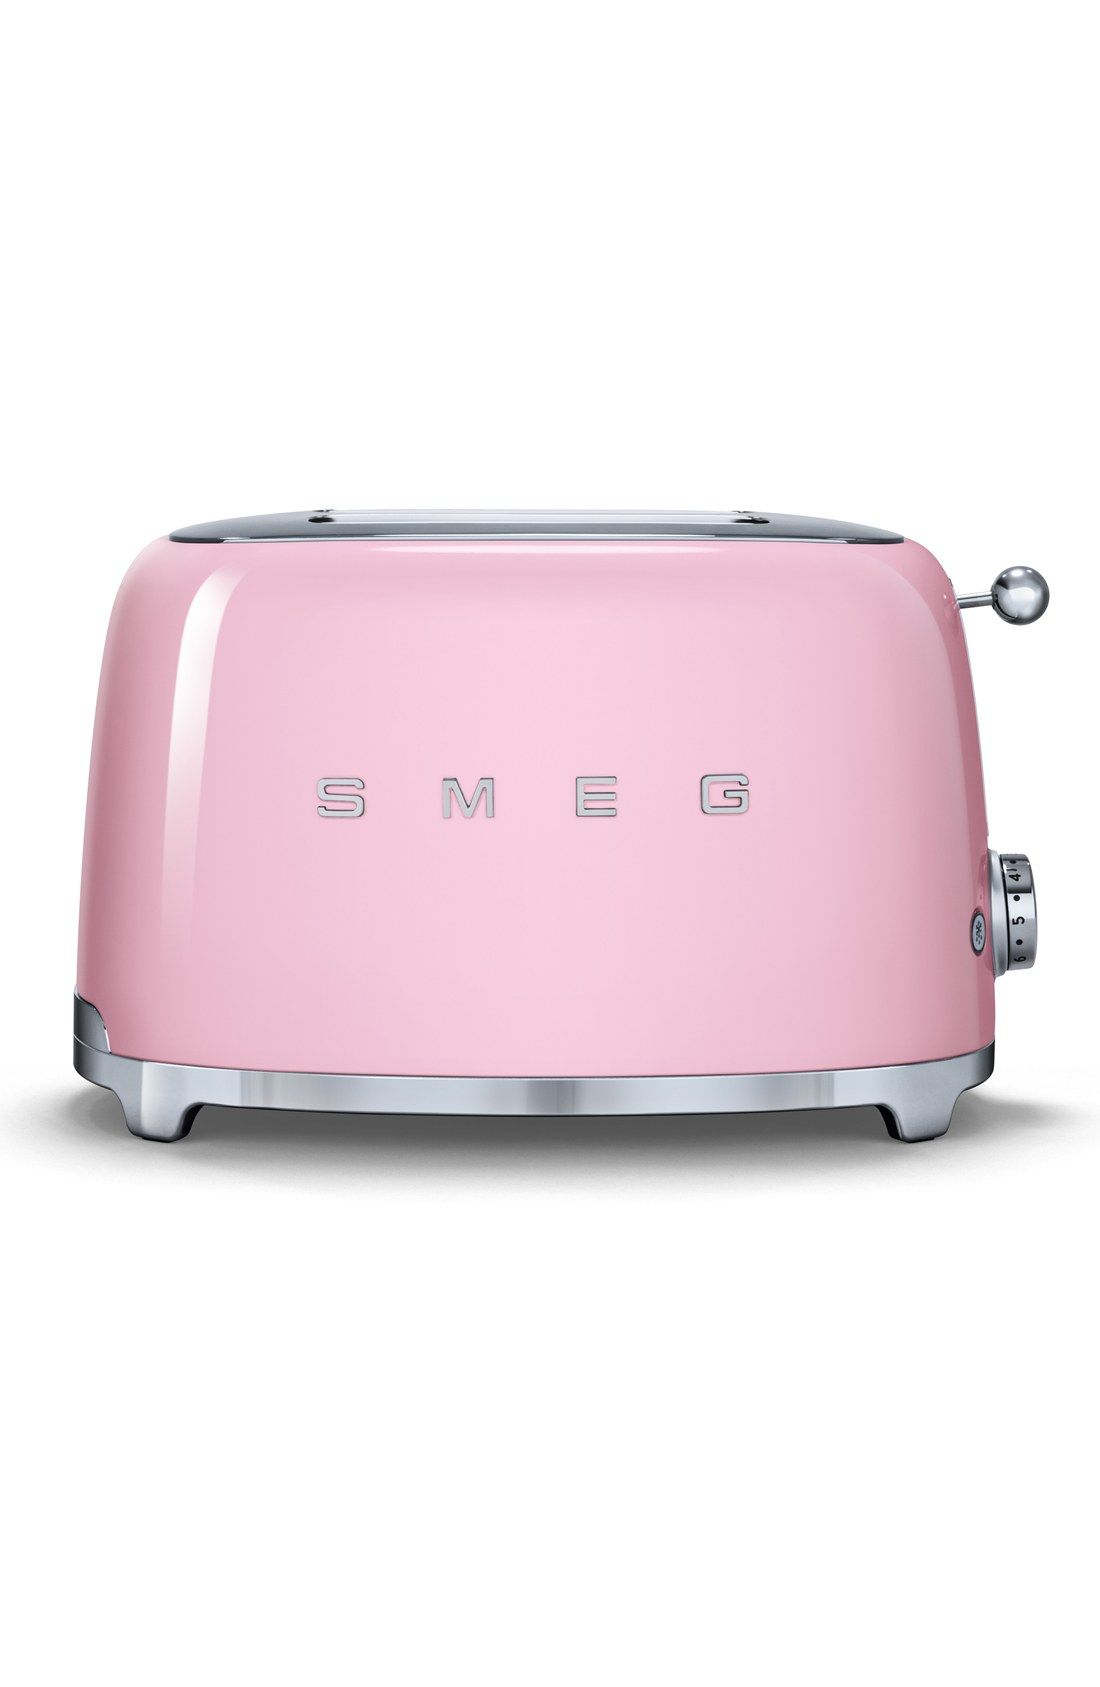 Uncategorized Retro Kitchen Small Appliances this retro toaster in pink is totally cute and perfect for the kitchen small appliancesdomestic